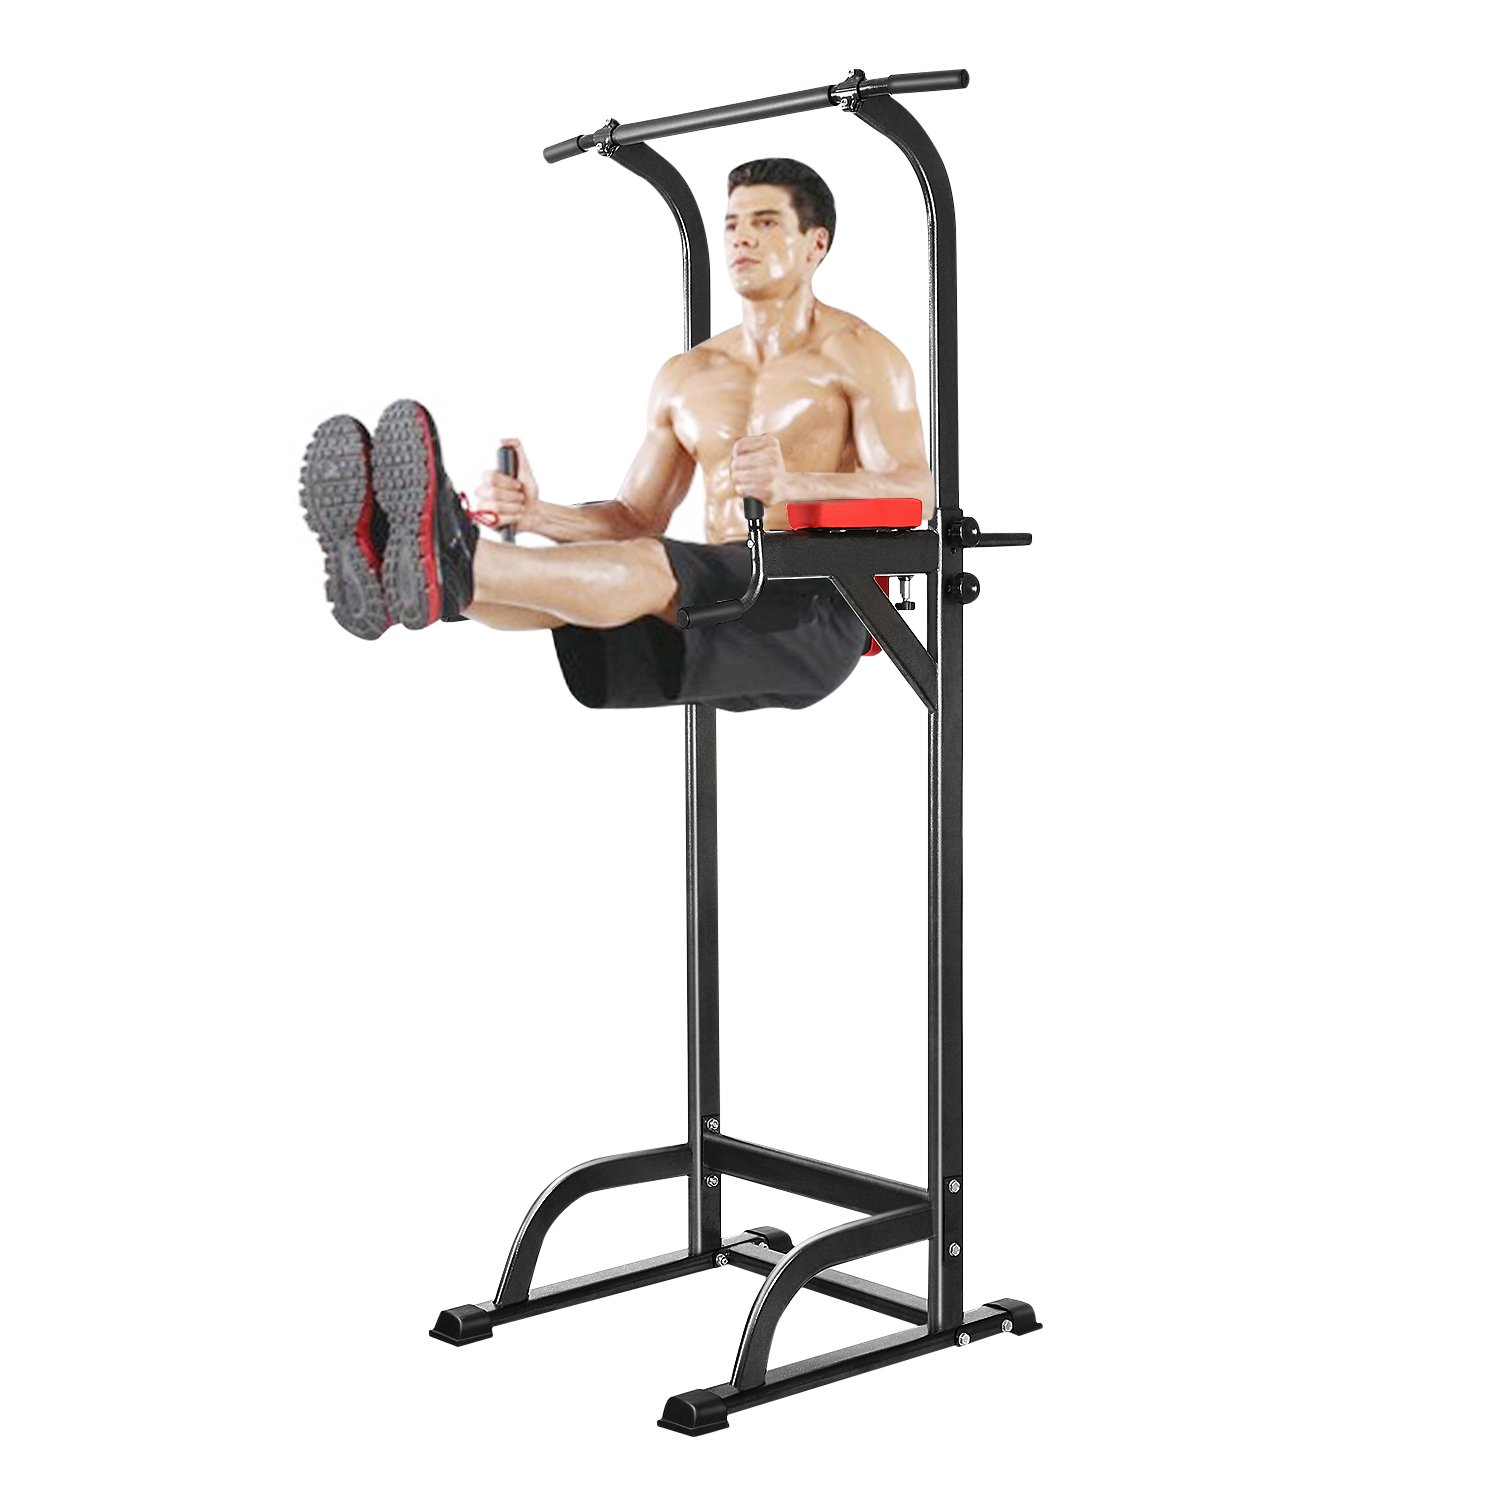 Hufcor Pull Up Stand Full Body Power Tower Adjustable Power Tower Strength Power Tower Fitness Workout Station